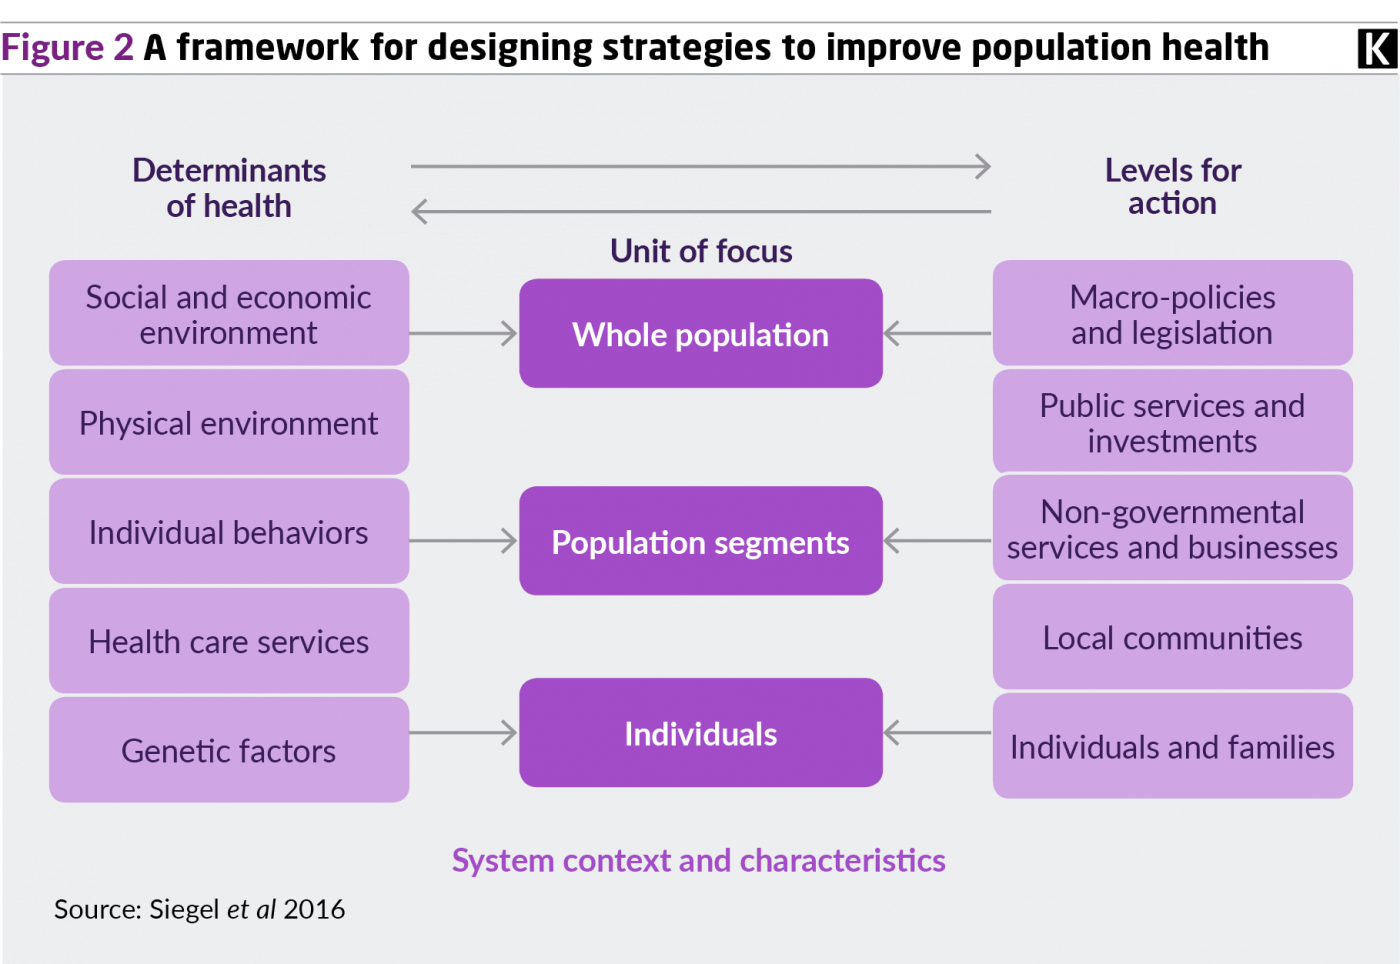 Figure 2 graphics shows a framework for designing strategies to improve population health.